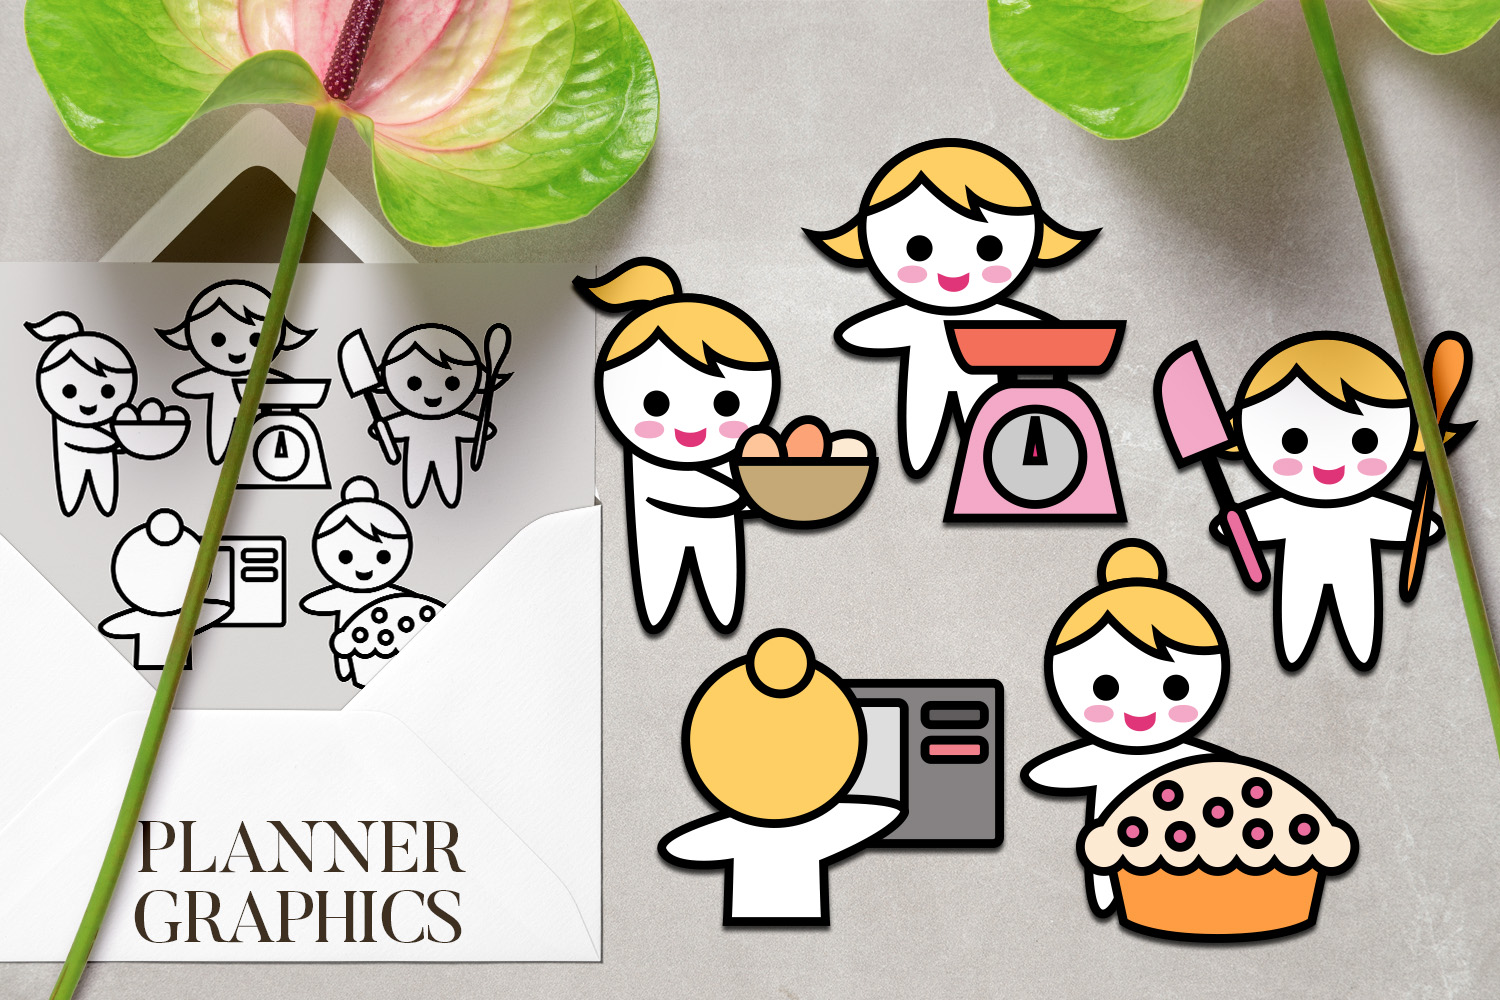 Hobby illustrations bundle - planner sticker graphics example image 2